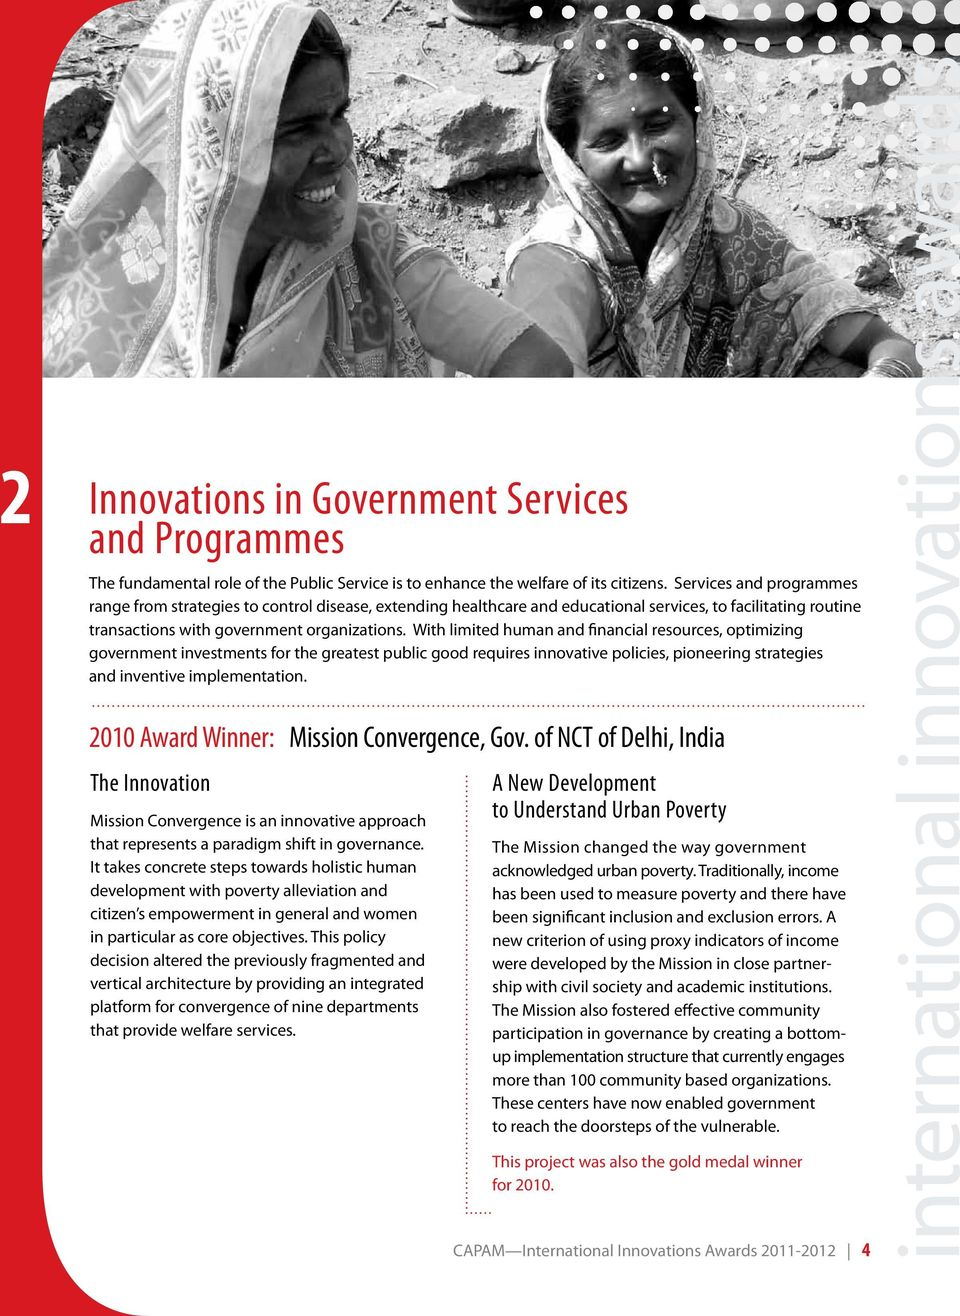 With limited human and financial resources, optimizing government investments for the greatest public good requires innovative policies, pioneering strategies and inventive implementation.